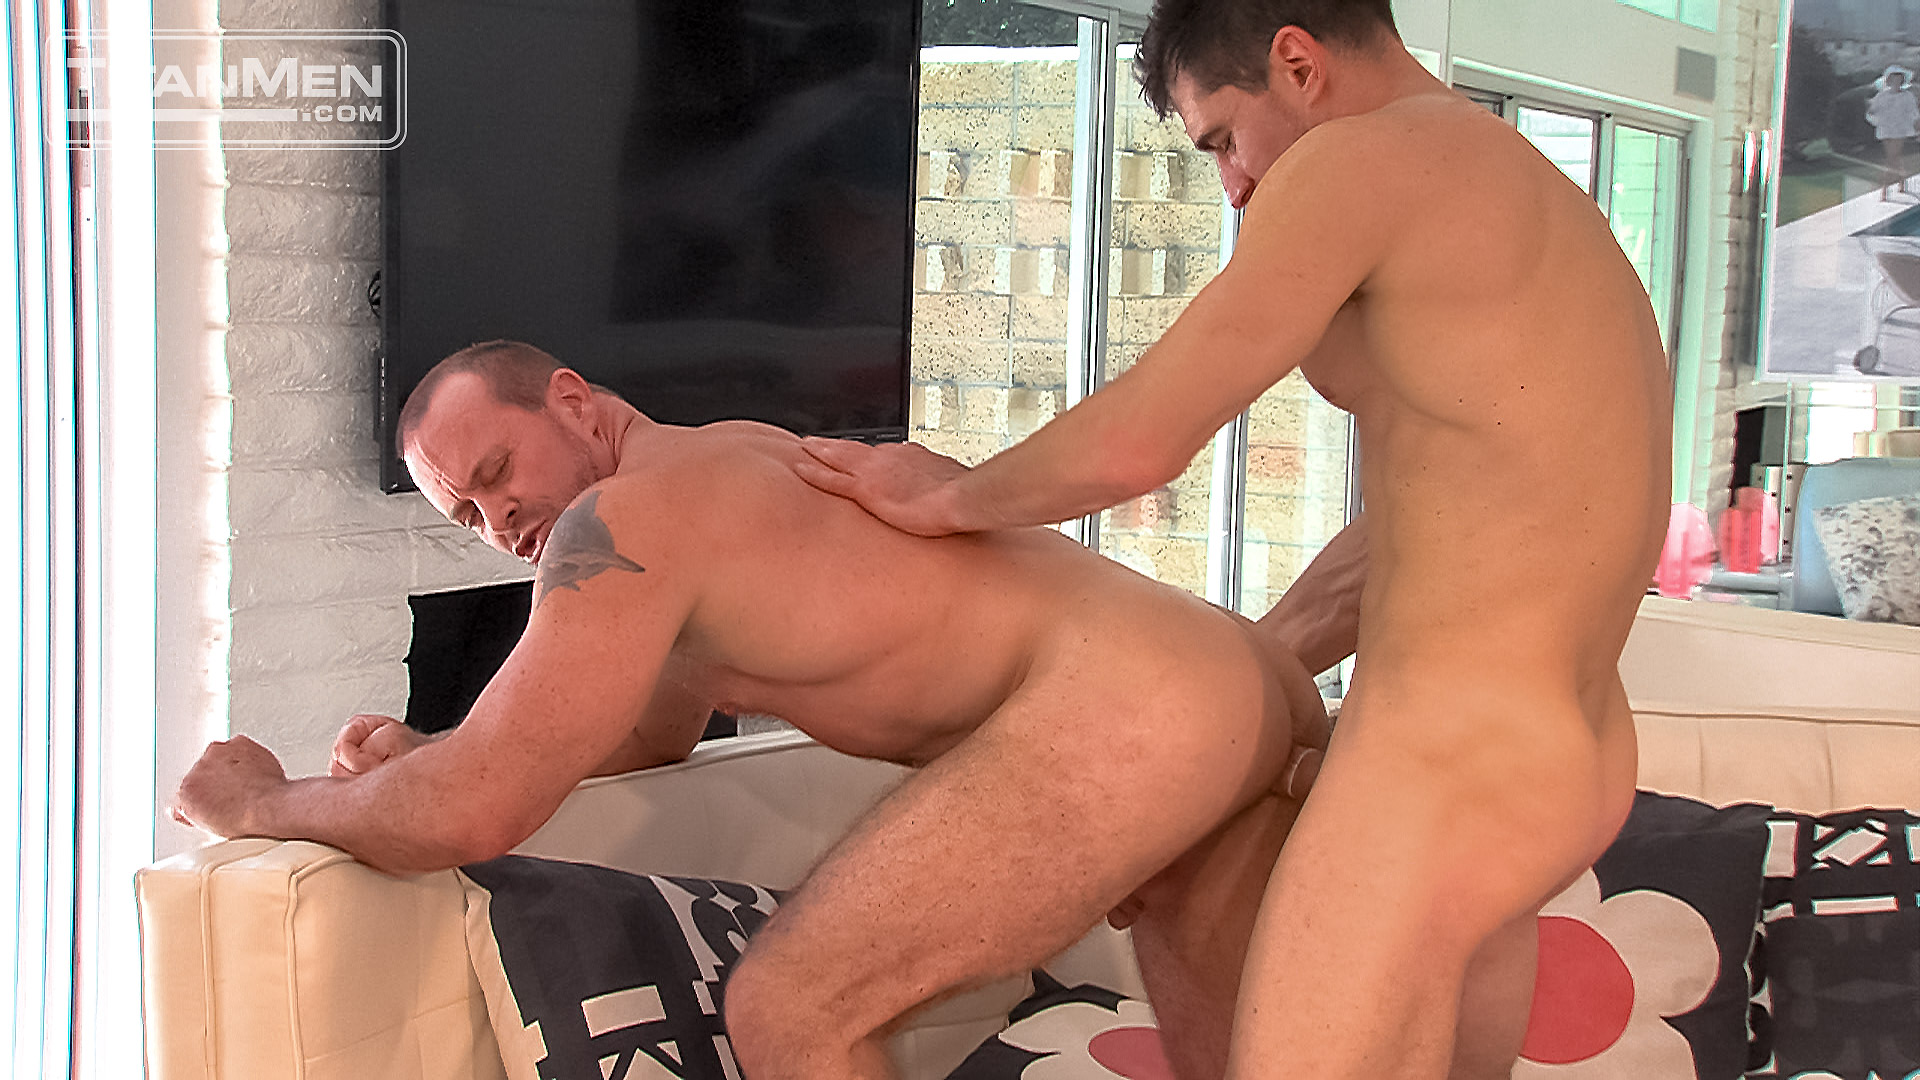 The Dads Take A Break And The Boys Make A Bet Video